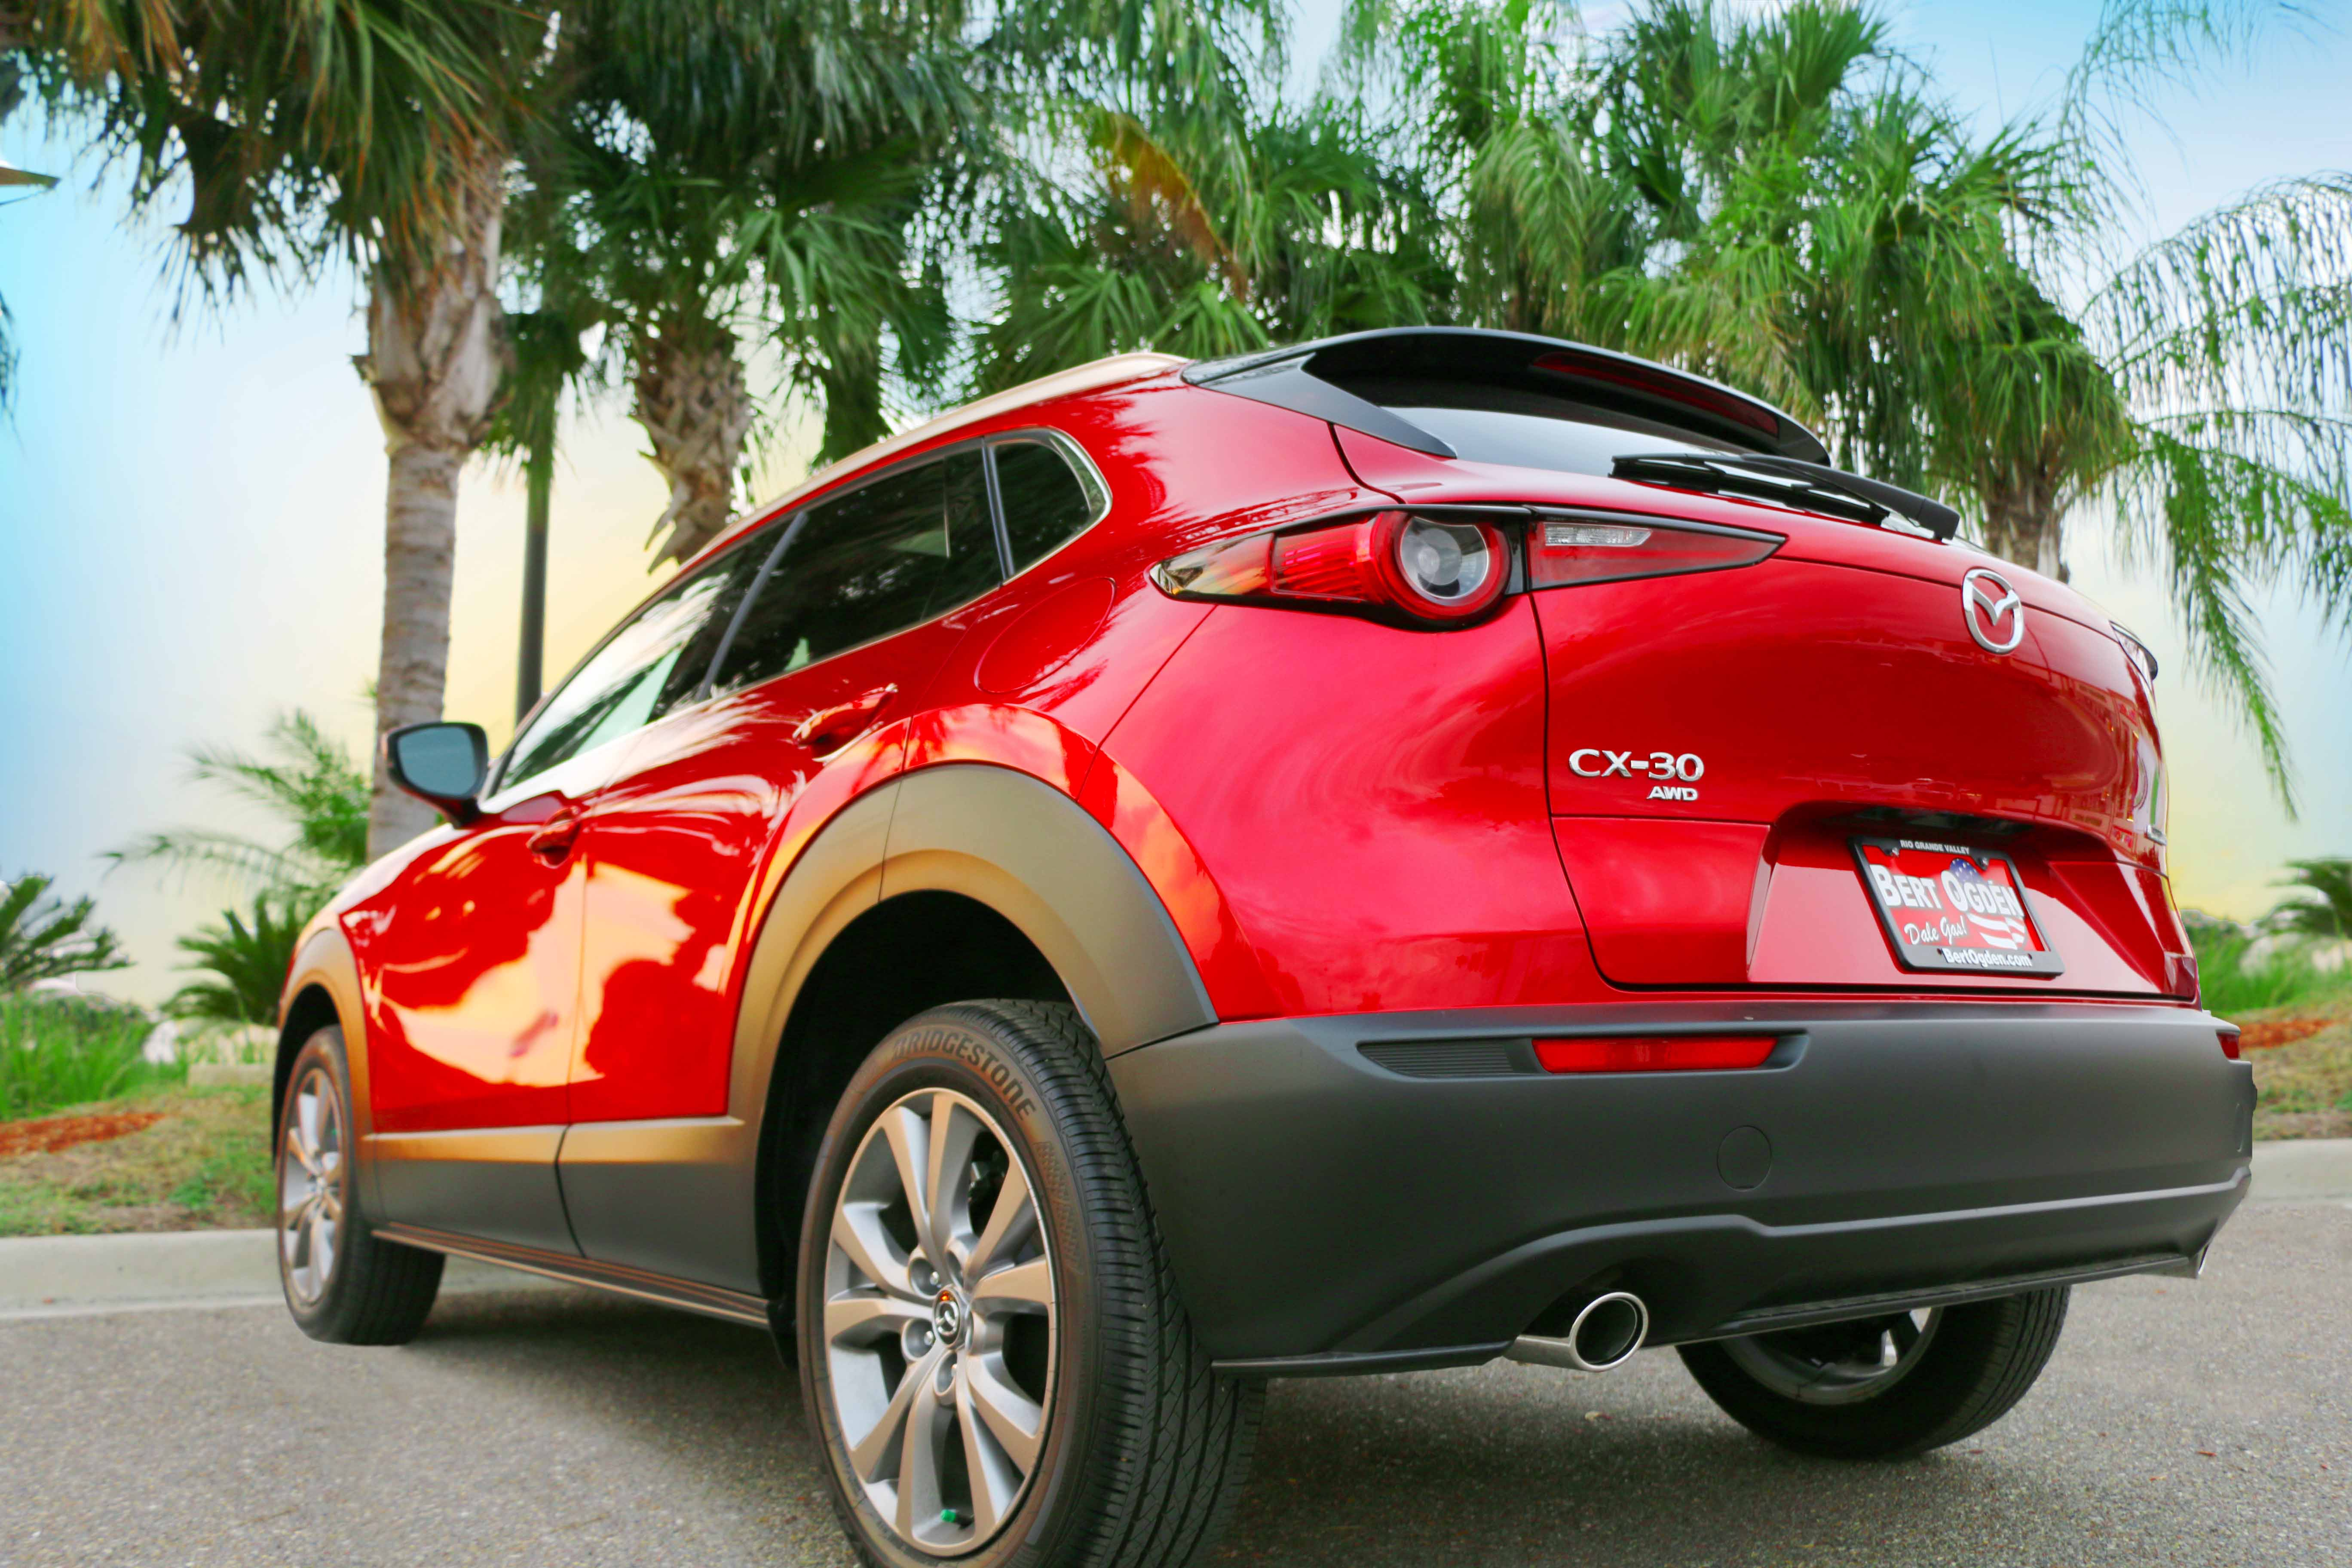 Rear view of Mazda CX-30 parked in front of palm trees